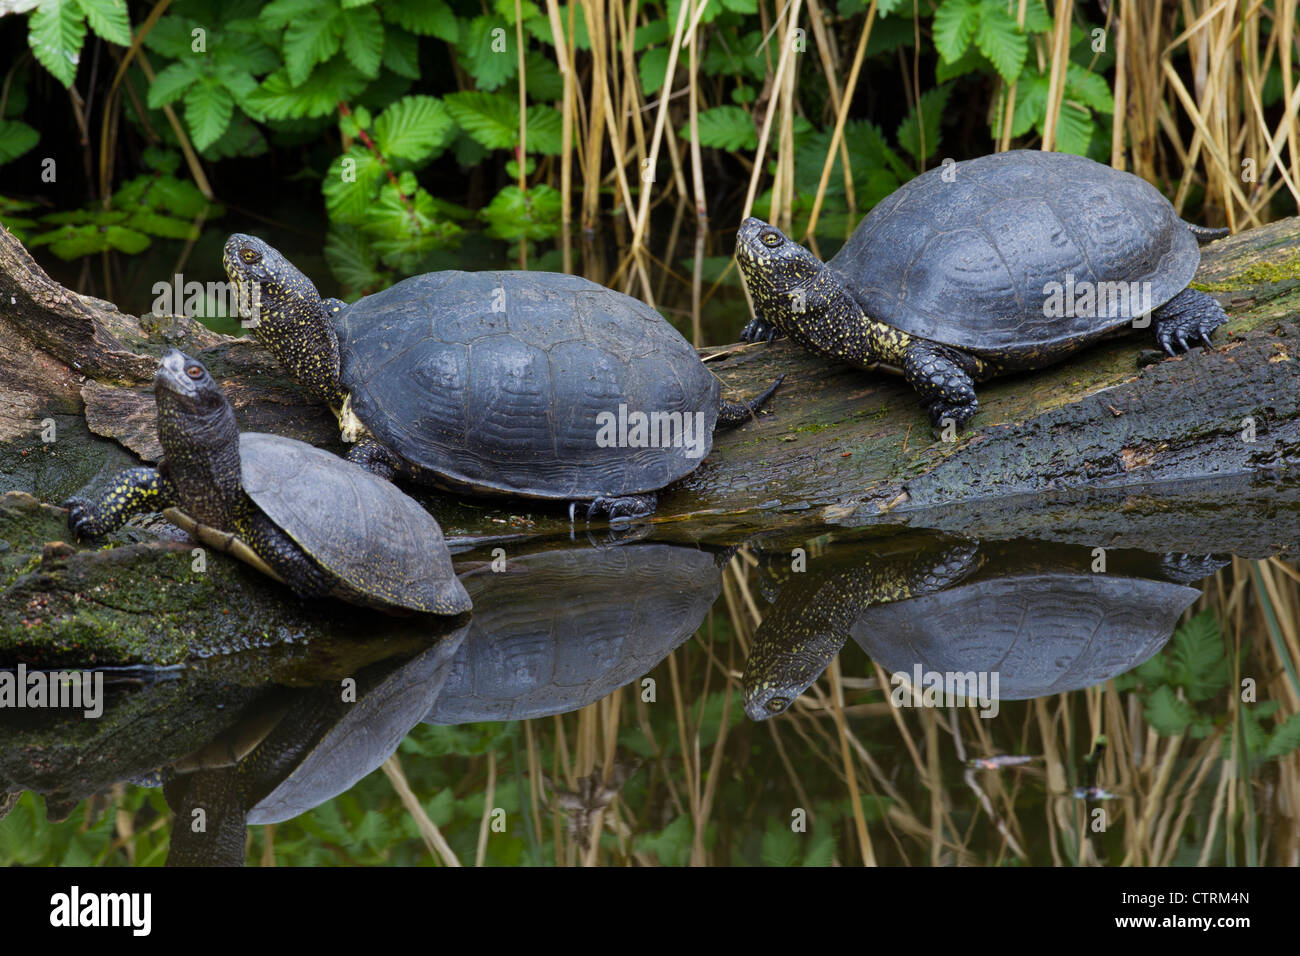 European pond turtles (Emys orbicularis) resting on fallen tree trunk along lake shore, Germany - Stock Image